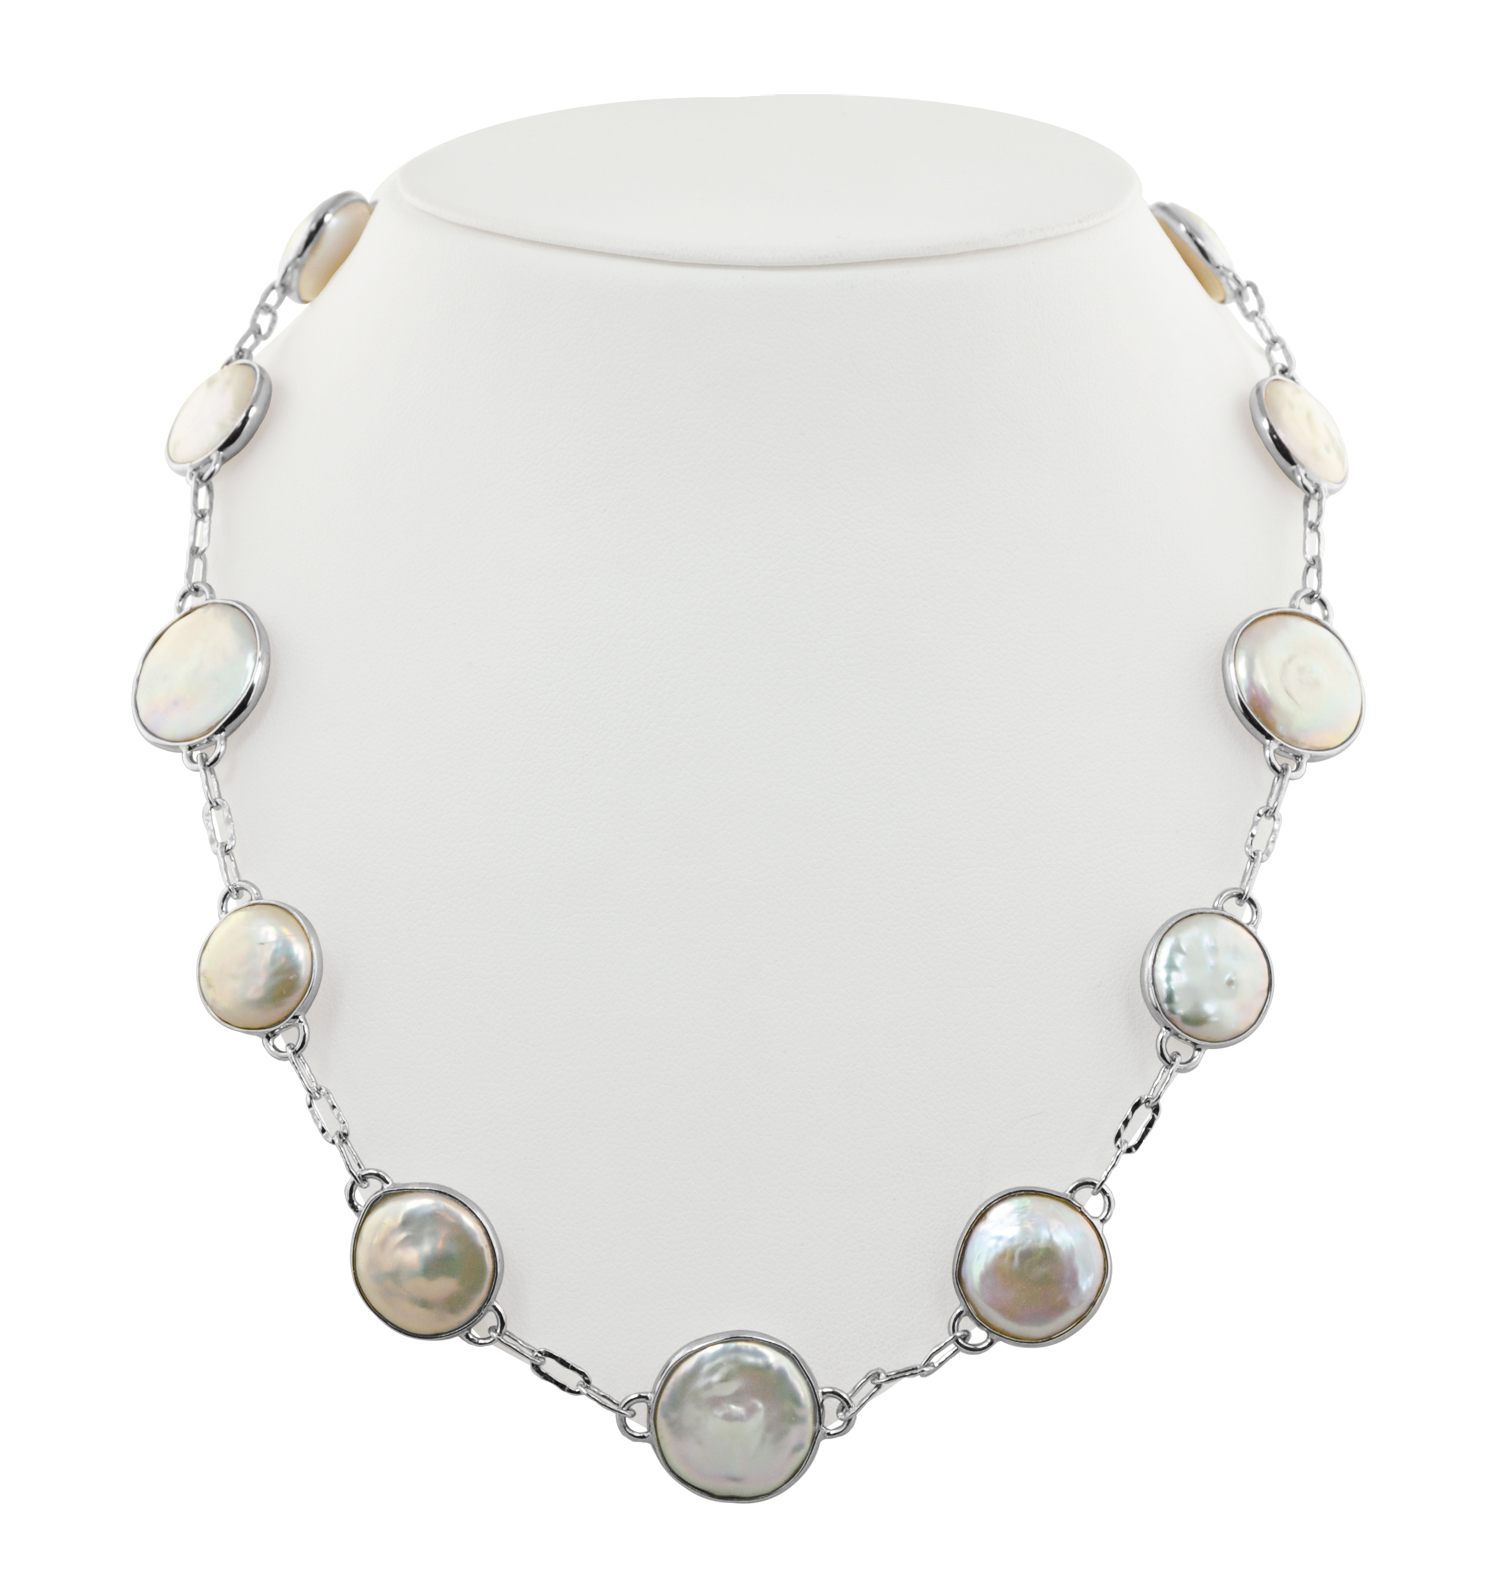 Sterling Silver 12-16mm White Baroque Coin Freshwater Cultured Pearl 18 Necklace